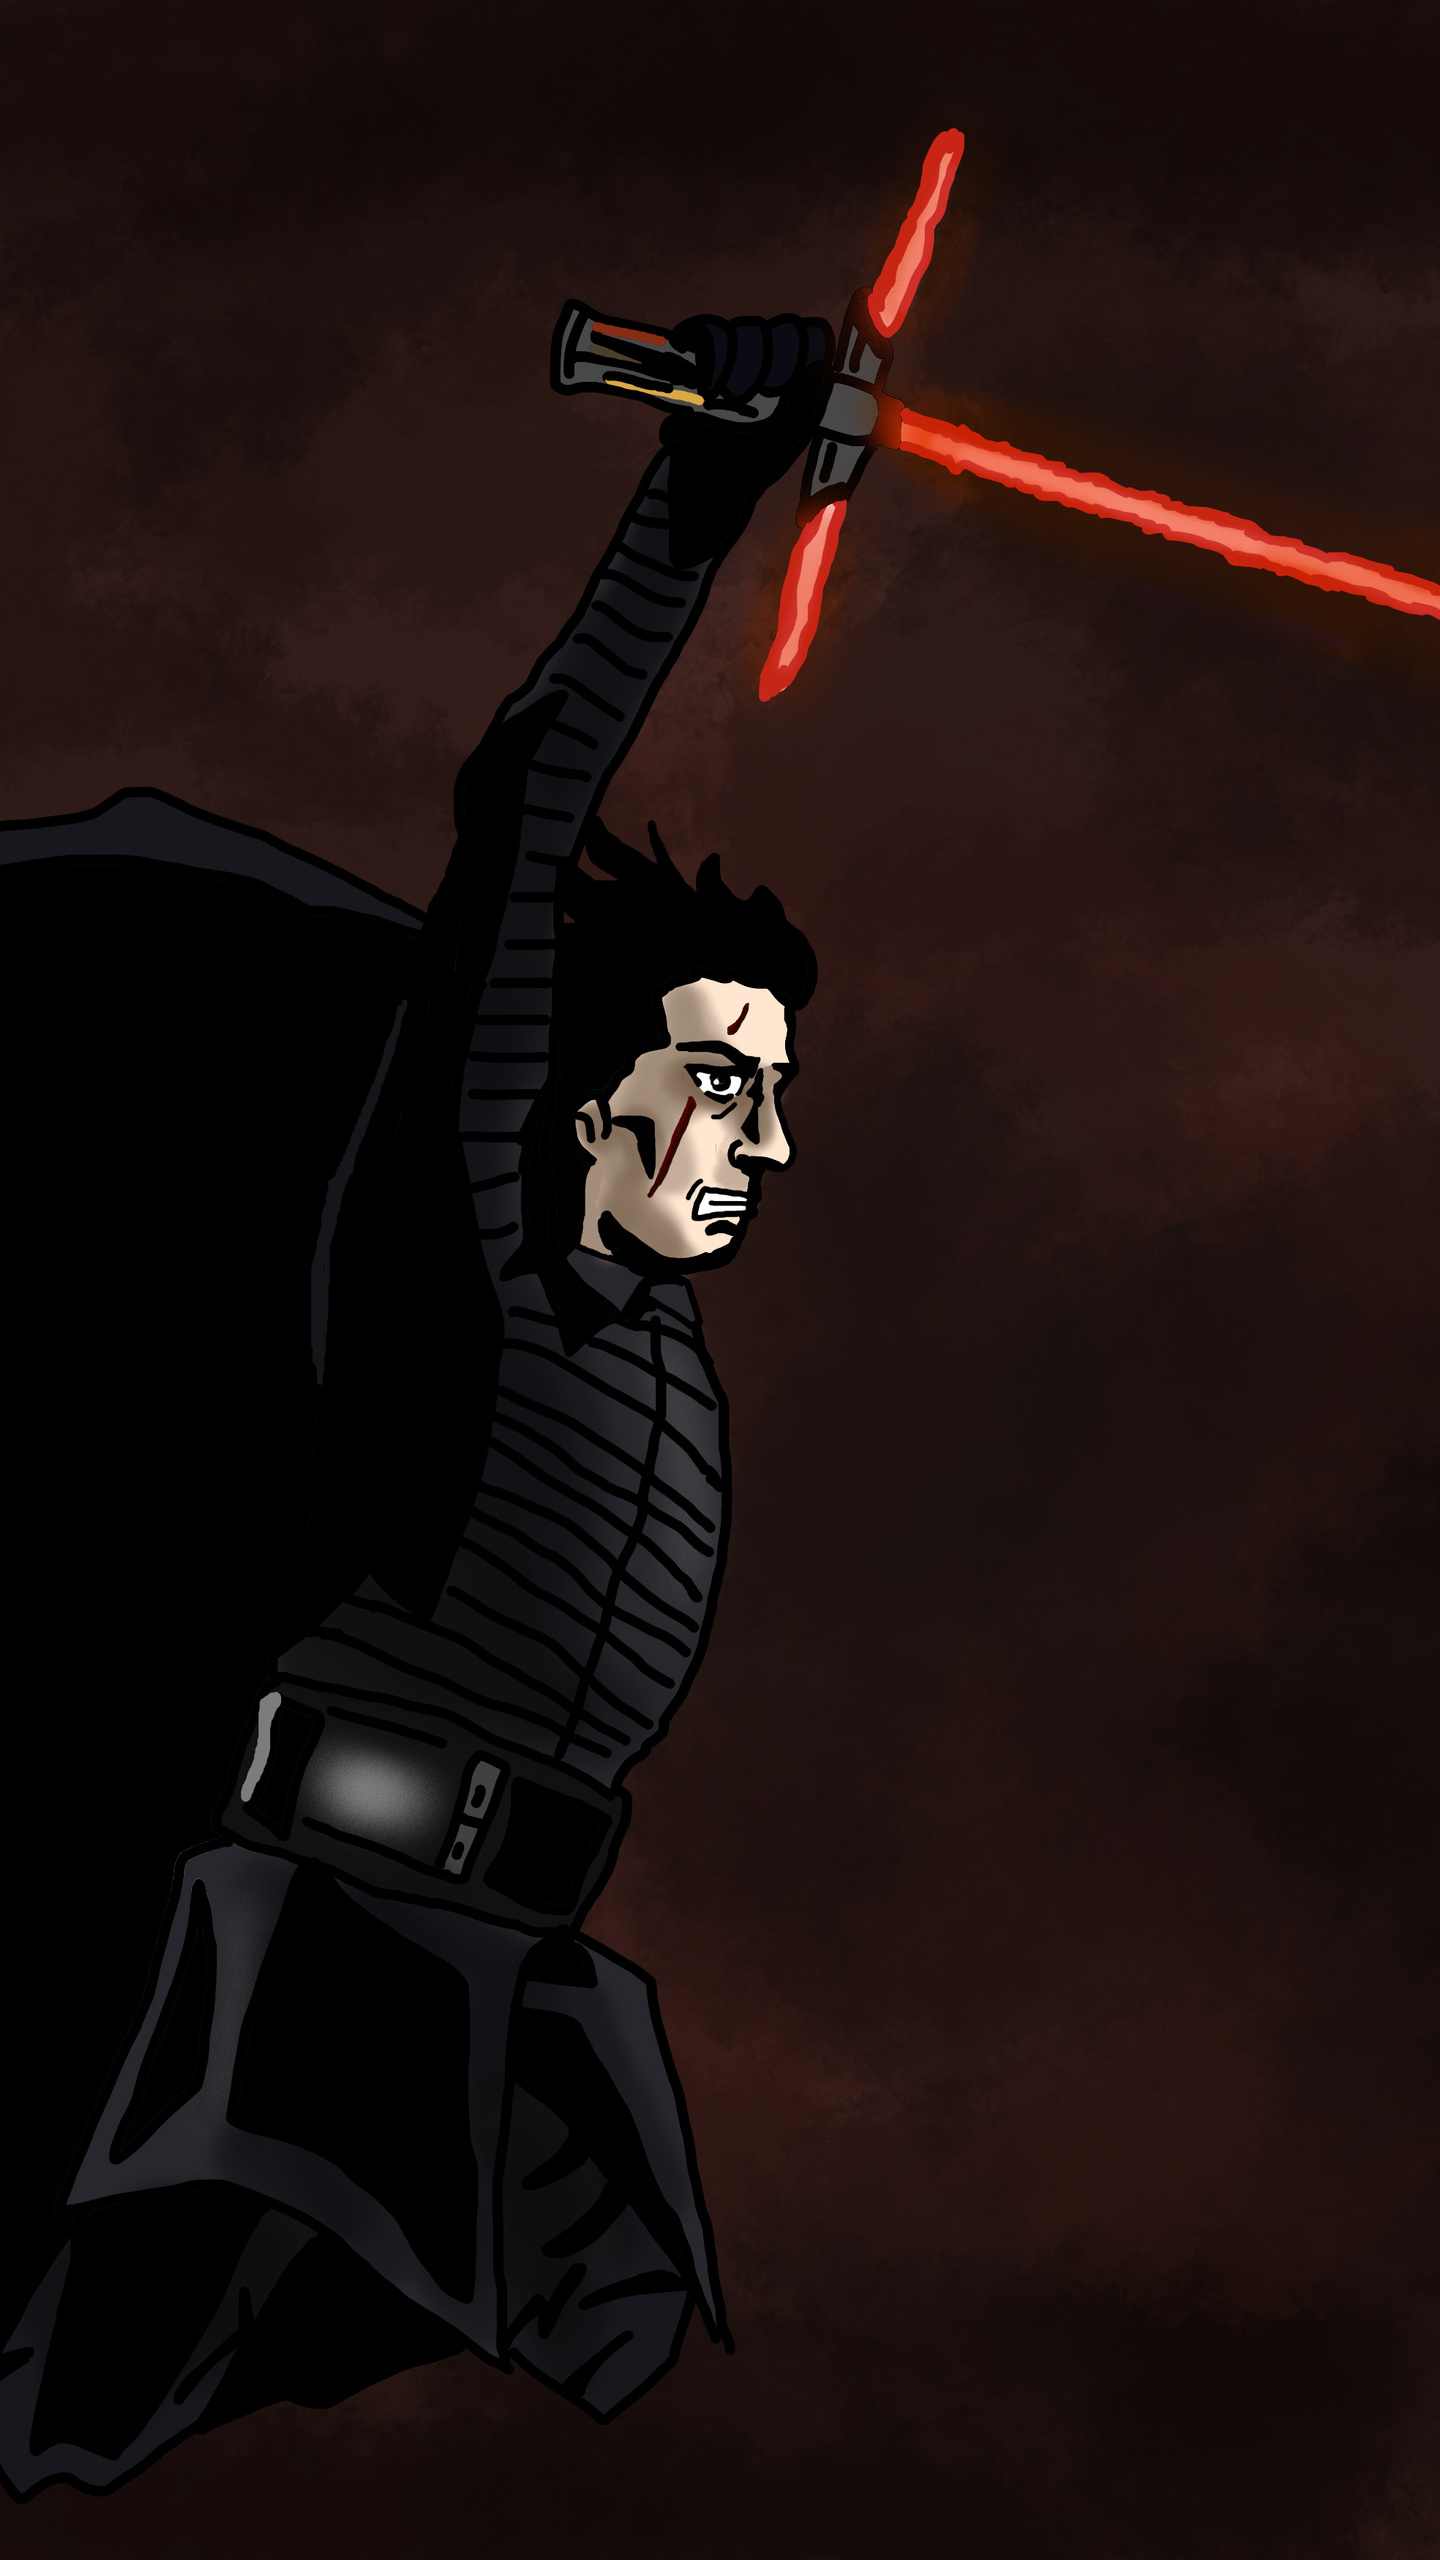 kylo-ren-star-wars-the-last-jedi-5k-artwork-fx.jpg